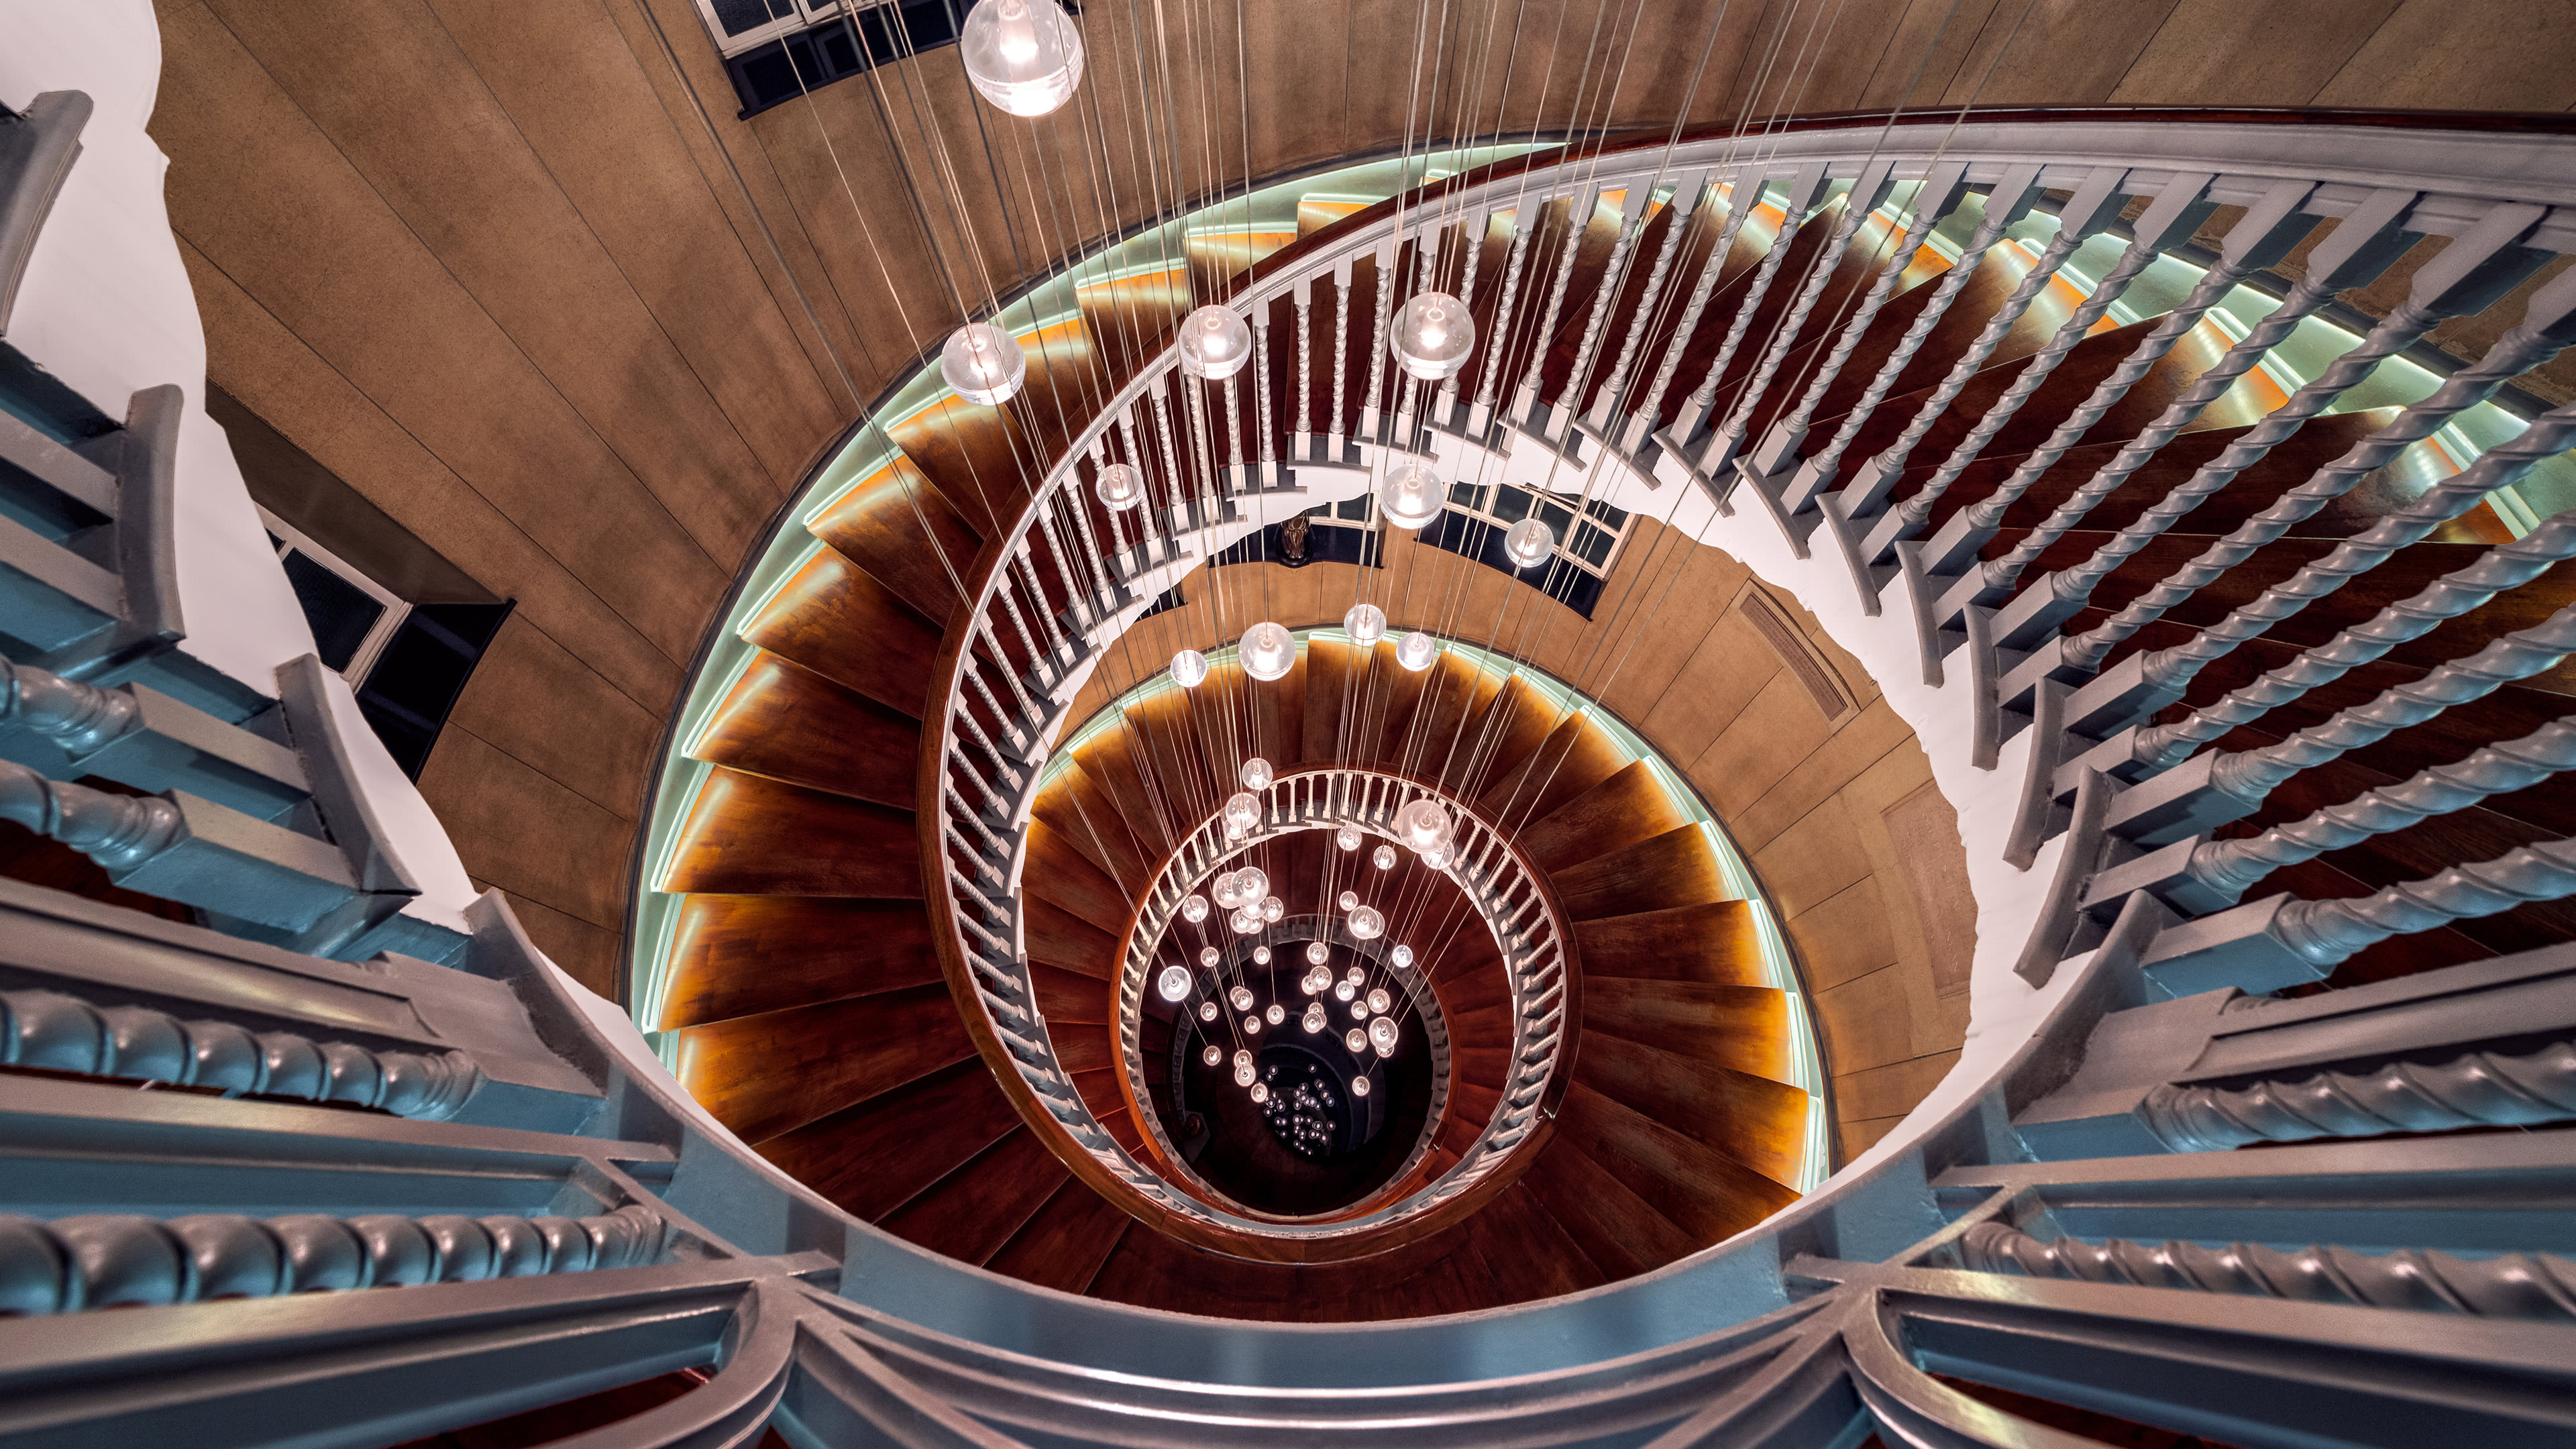 spiral staircase uhd 4k wallpaper